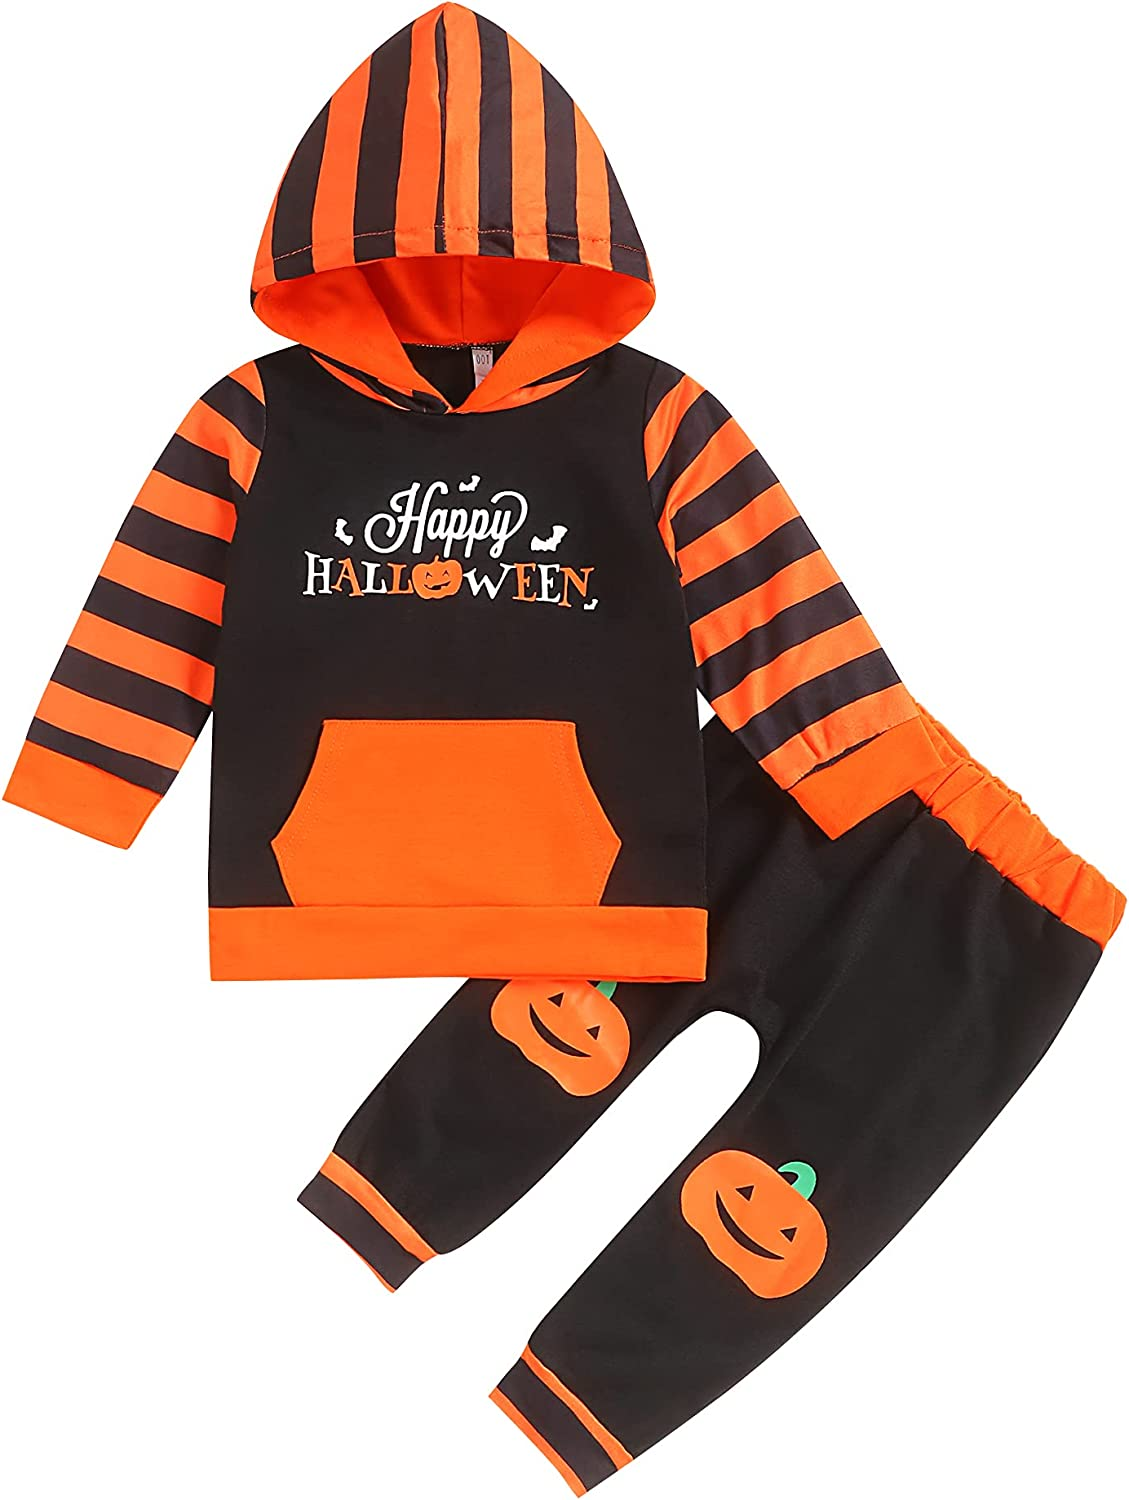 Baby Boy Halloween Outfits Toddler Boy Halloween Outfits Hoodie Happy Halloween Outfits Set